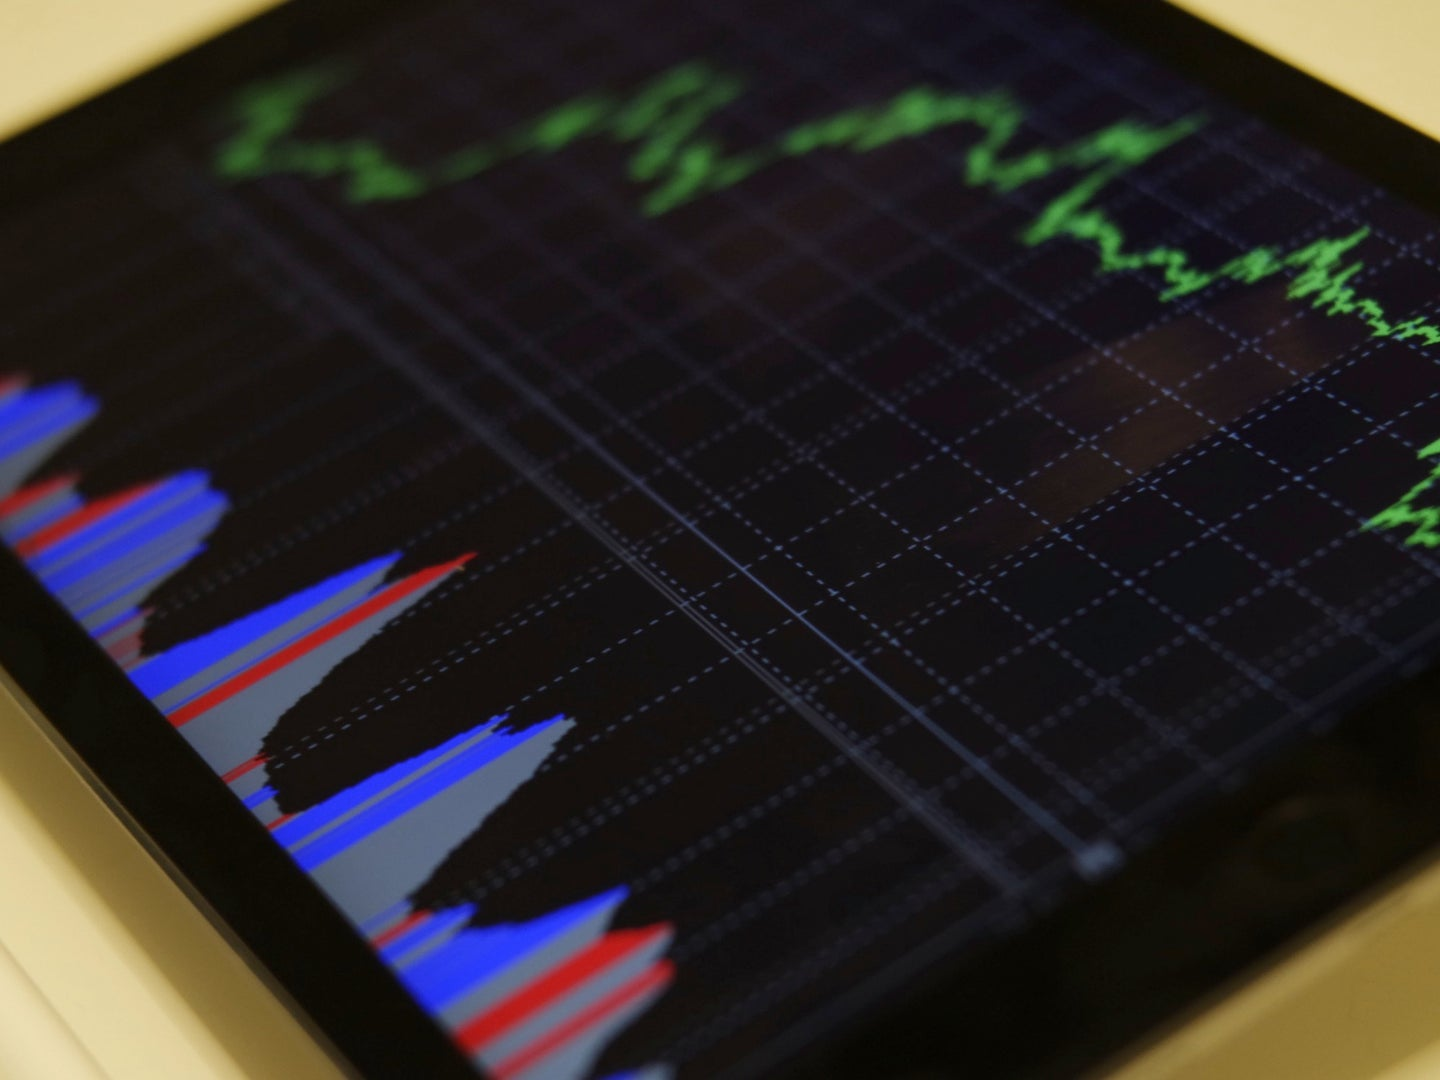 graphs showing stock prices